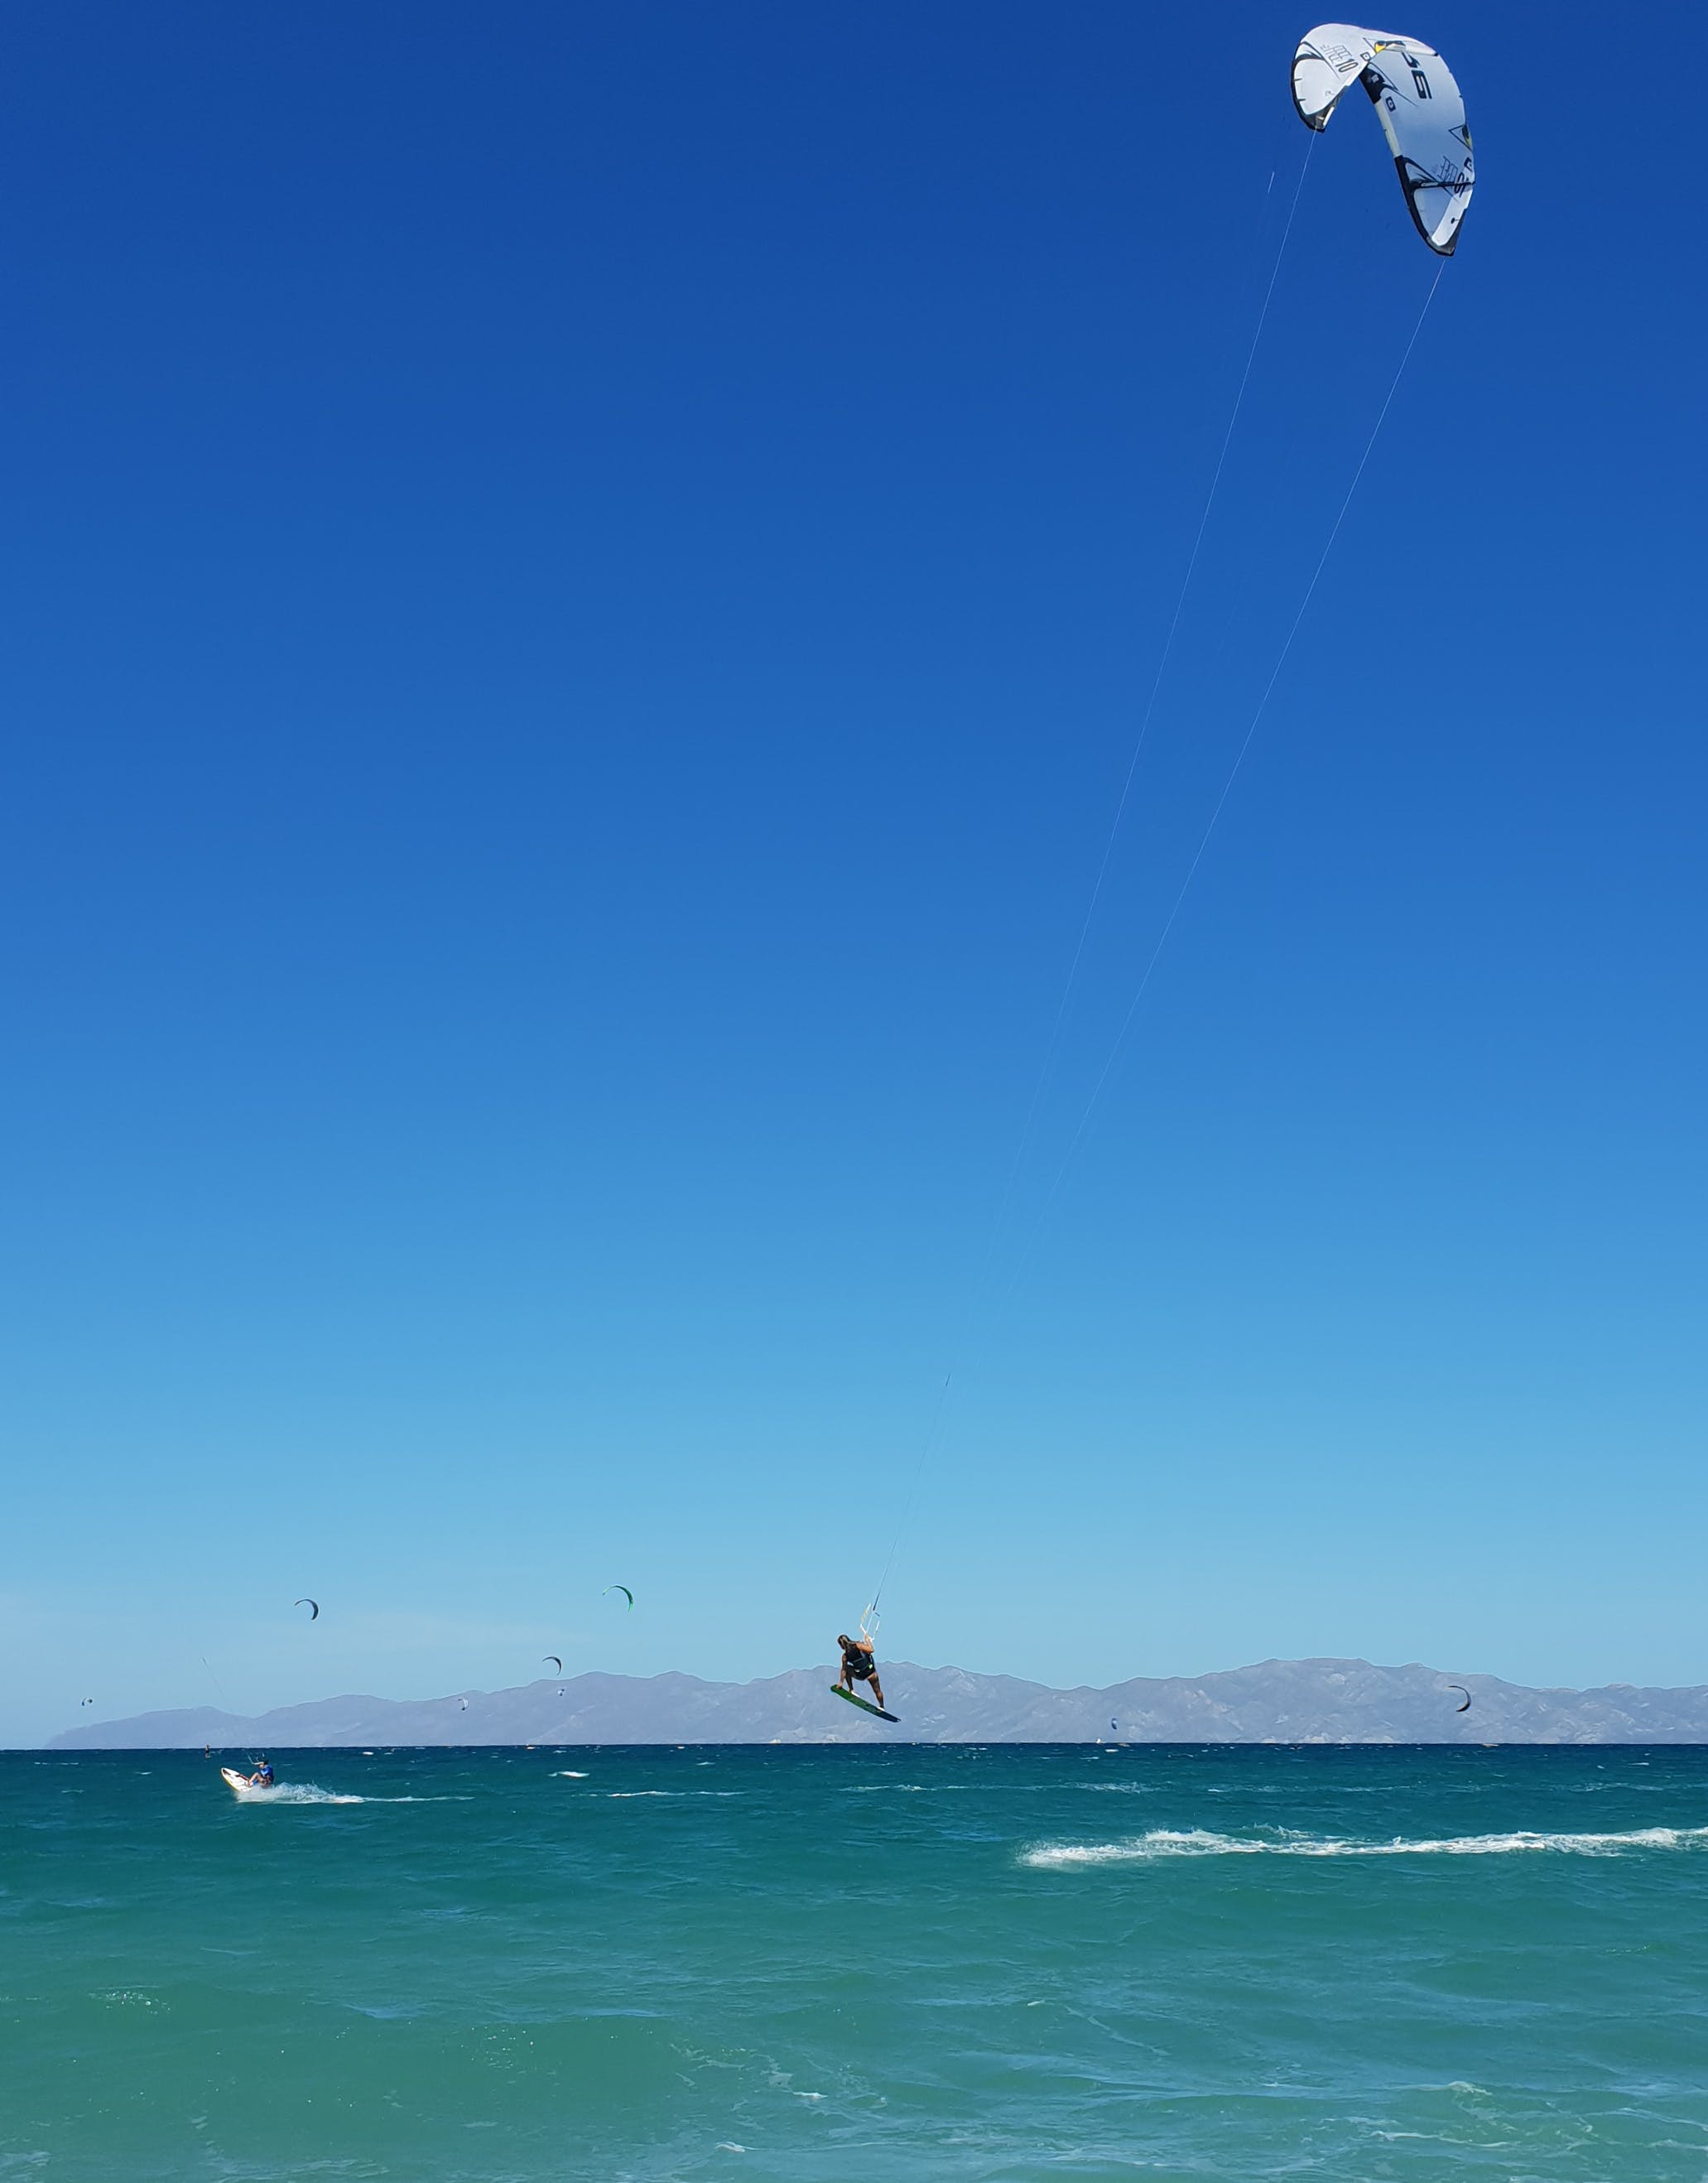 We provide kitesurf lessons in La Ventana. We teach with BBtalkin'.